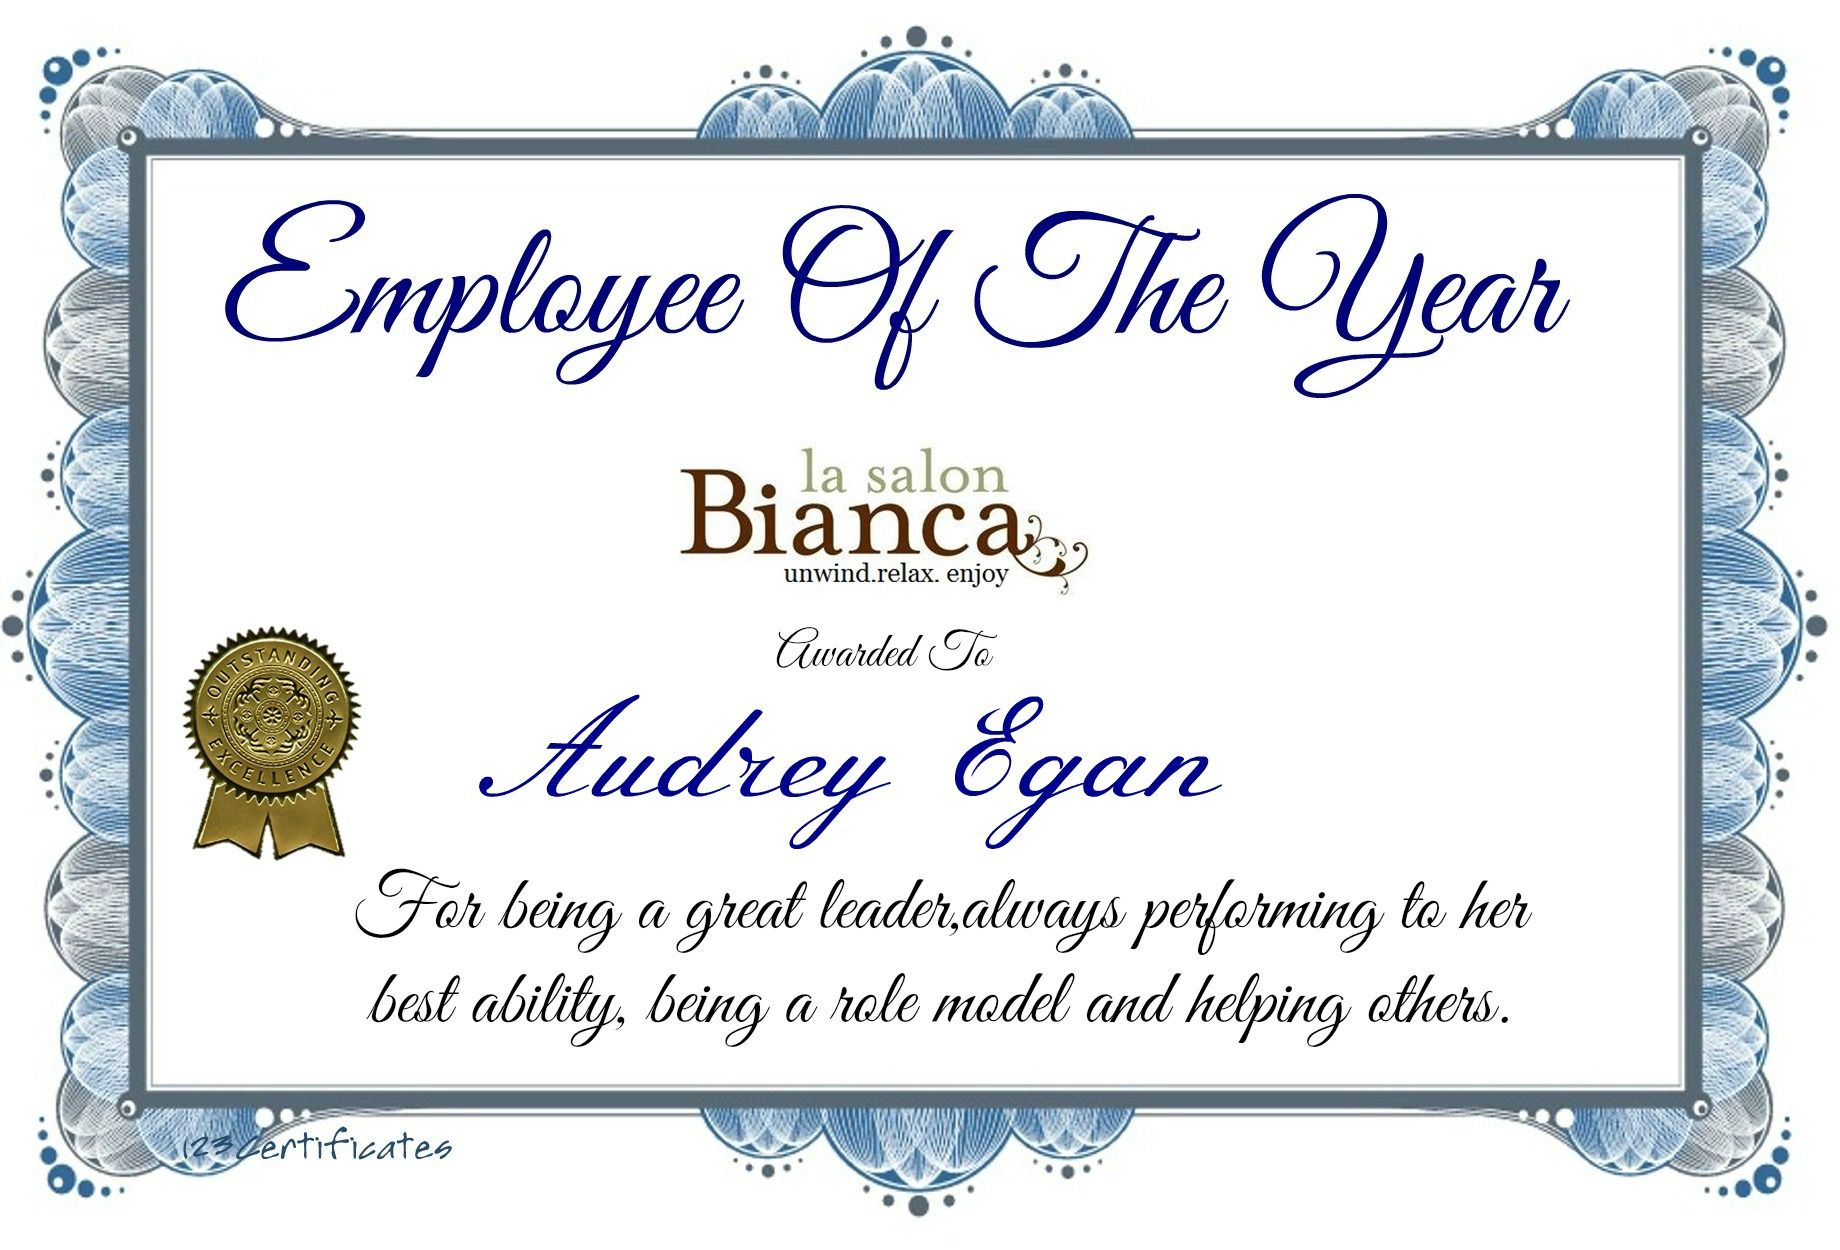 Years of service certificate template image collections employee years of service certificate template images certificate for years of service template image collections related 1betcityfo Images